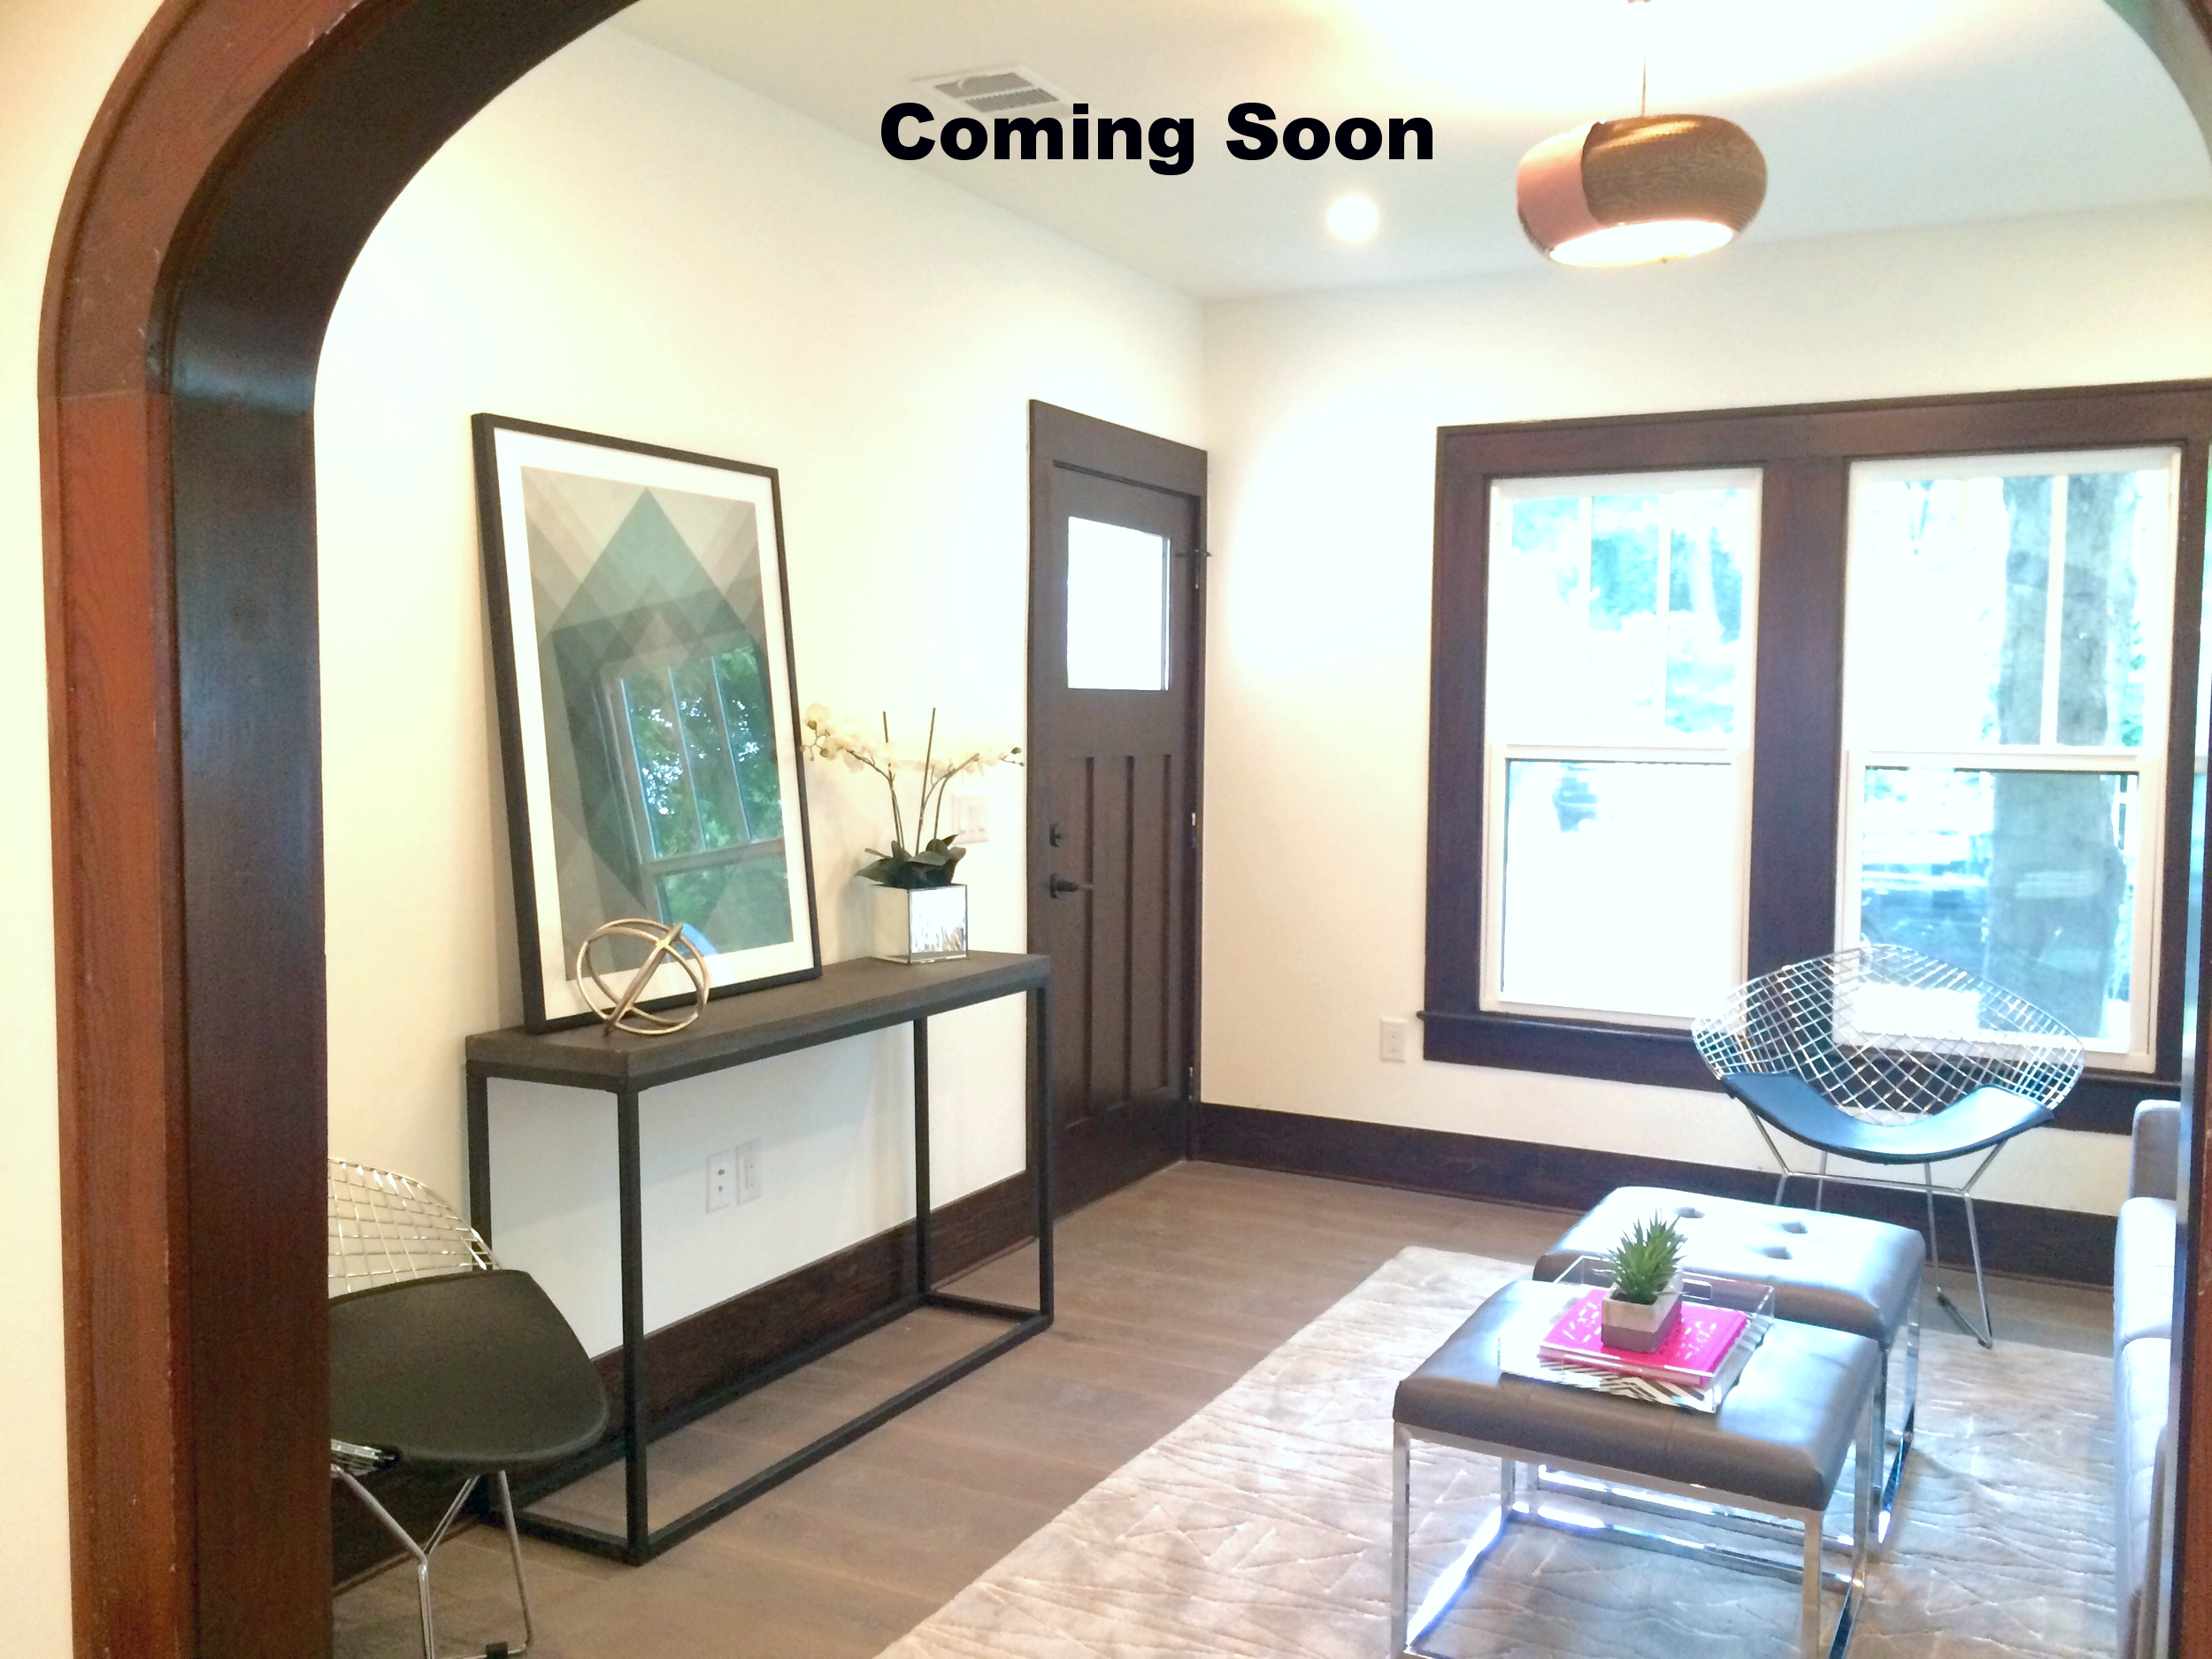 1930s East Austin Bungalow with addition! Some original wood trim. Pro images coming soon.